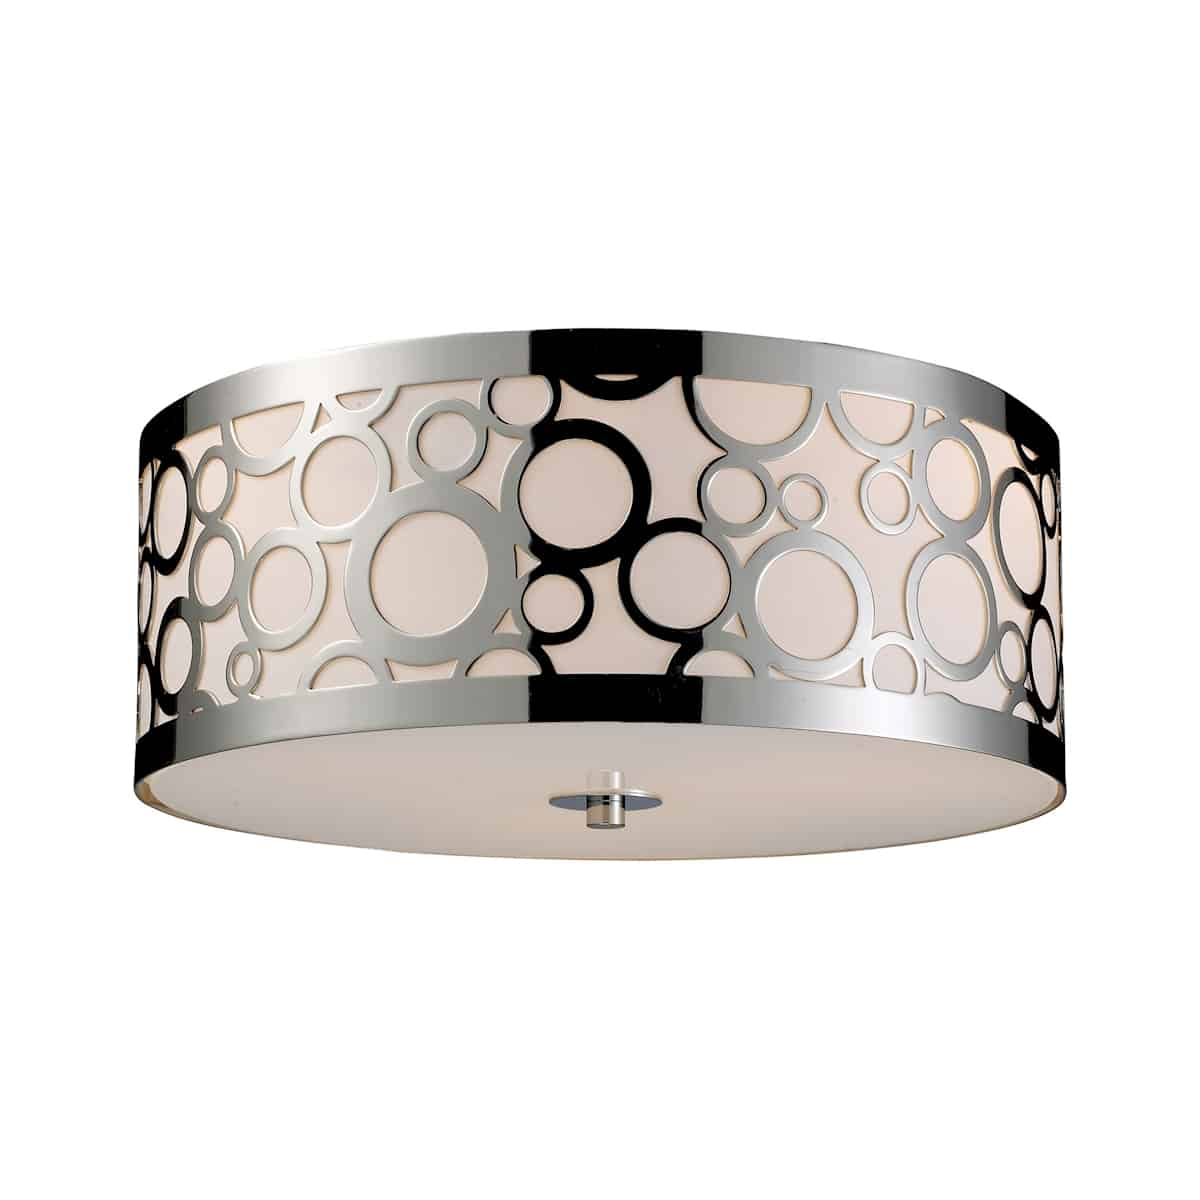 """EL-31024/3_The Retrovia Flush pairs a graceful """"rising bubbles"""" motif crafted from lustrous laser-cut steel with an elegant Crème diffuser. A sensually contoured shape story completes the design. Beautiful Polished Nickel finish. Immaculate transitional look. LED optional."""